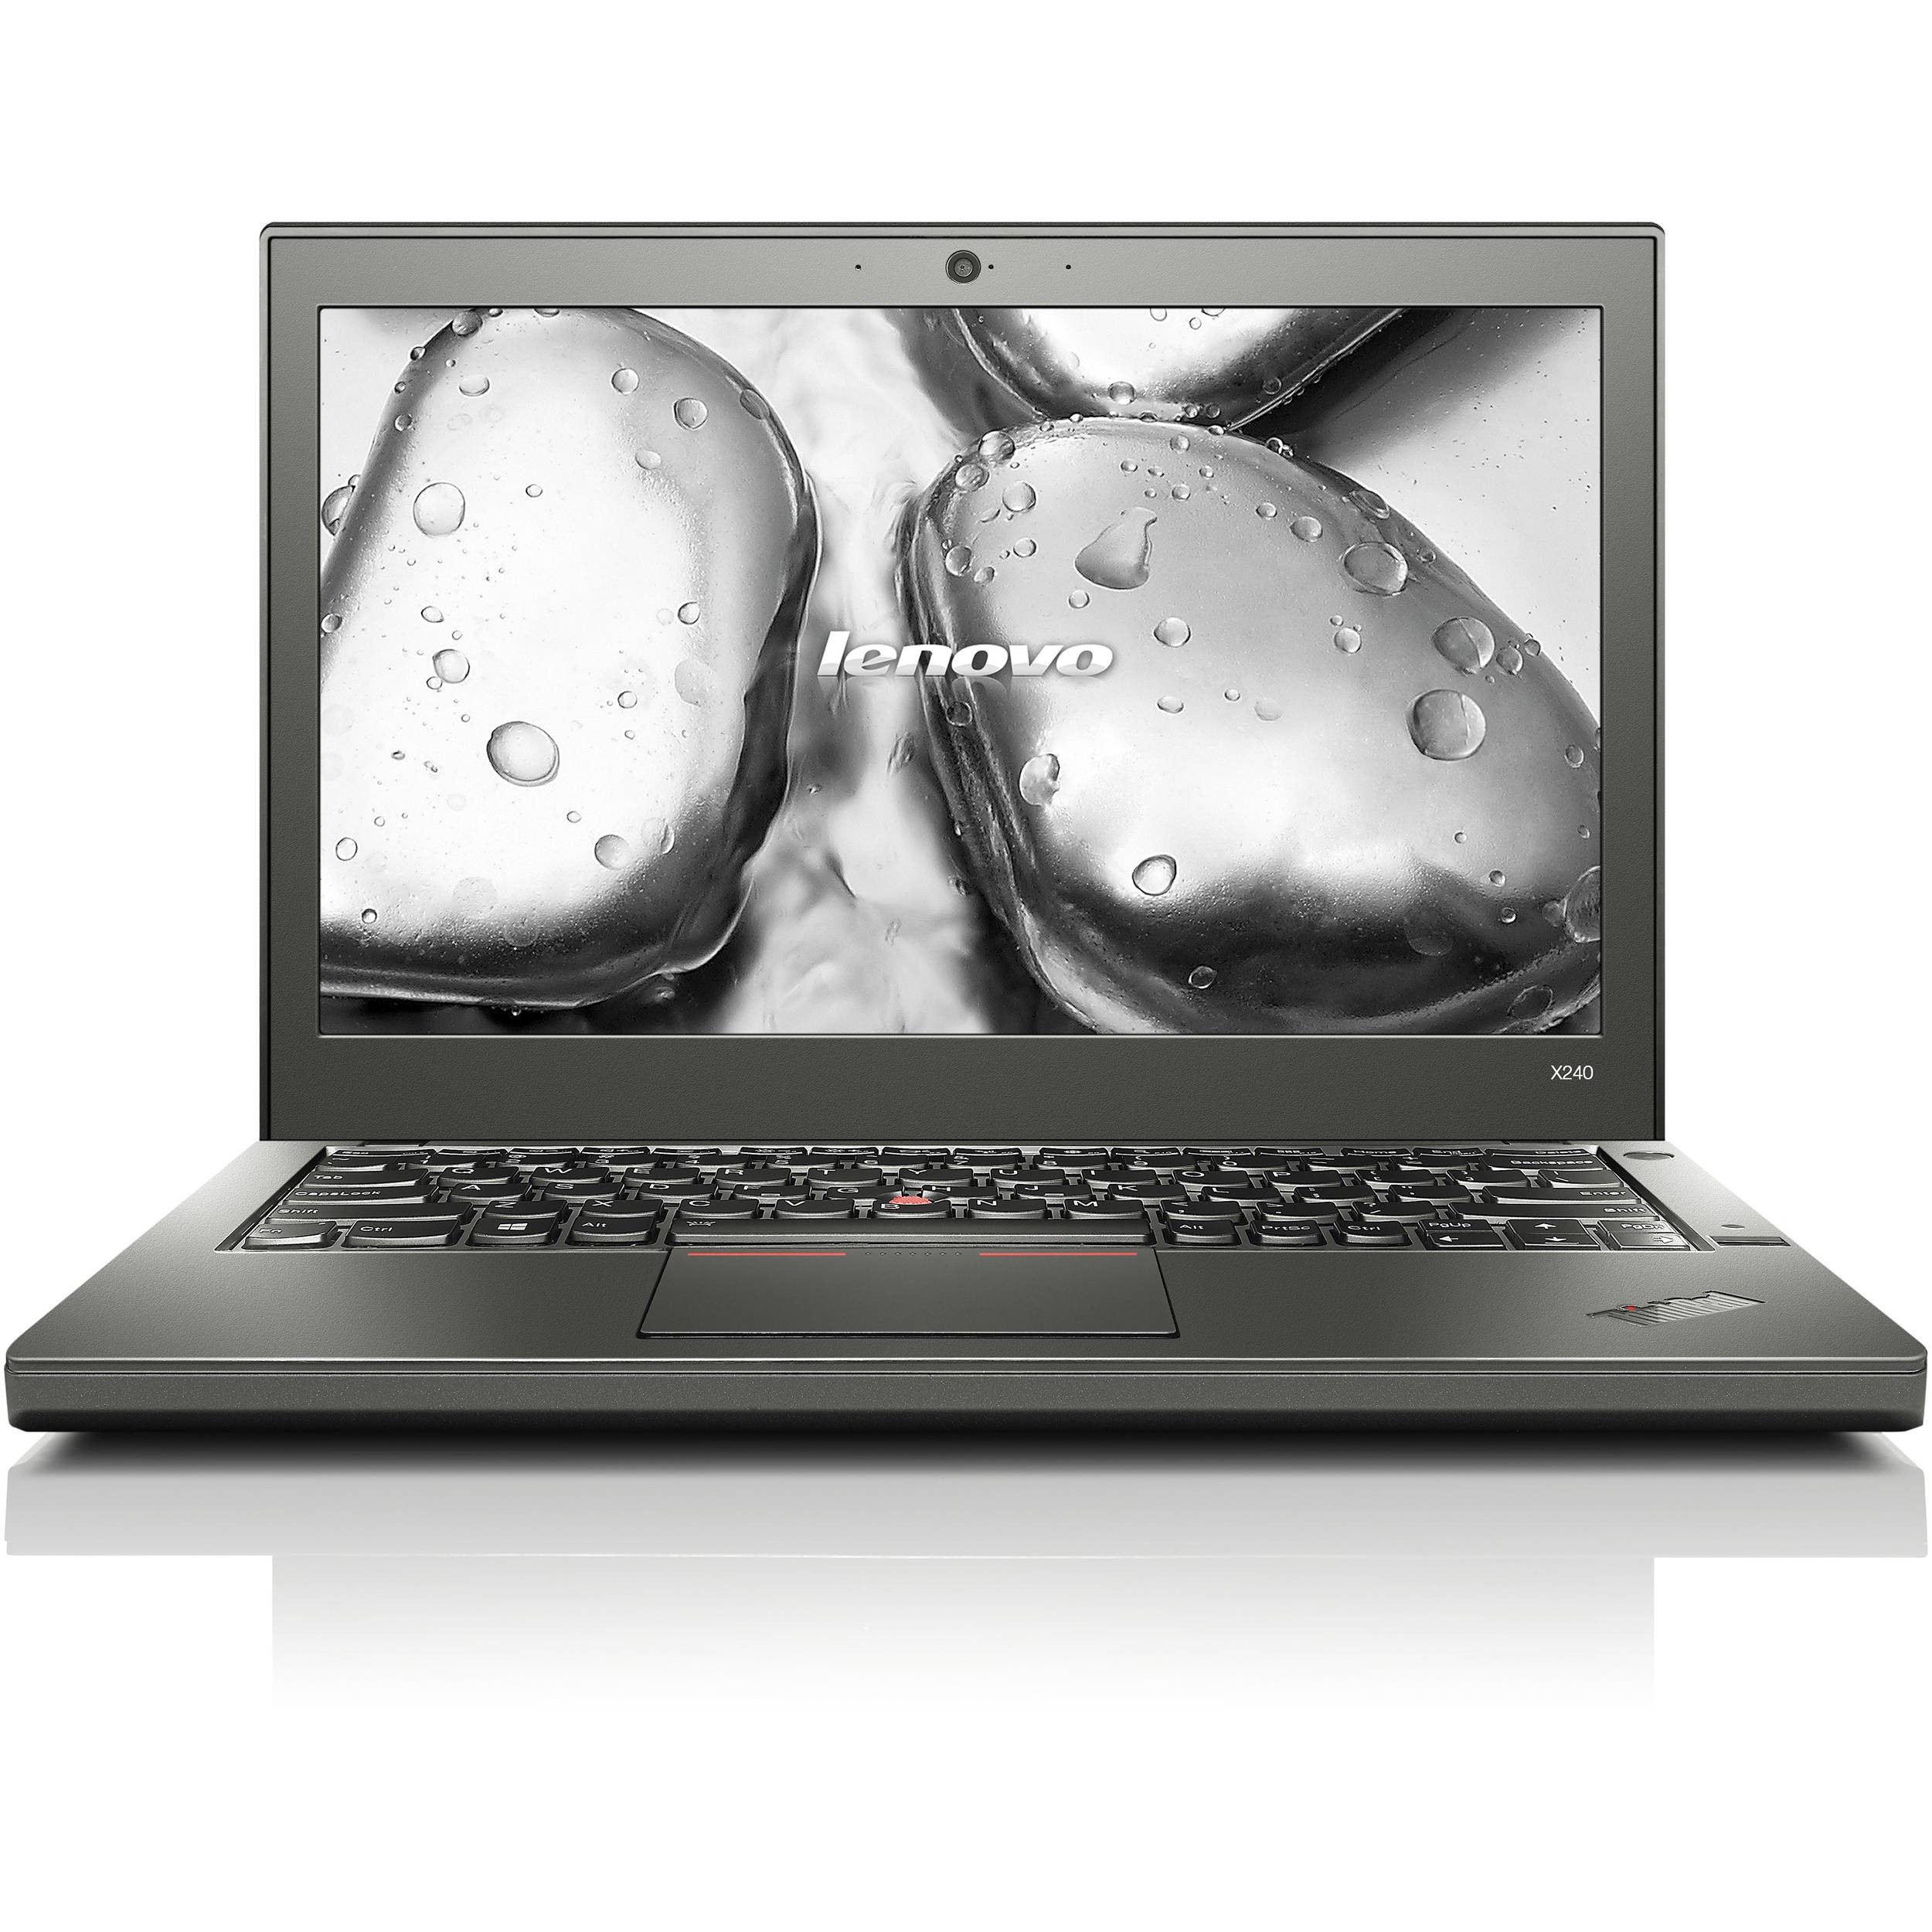 Refurbished laptops & desktops - Refurbished Lenovo Thinkpad X240 (Core I5 4TH Gen/4GB/500GB/Webcam/12.5''/Win-10 Home)